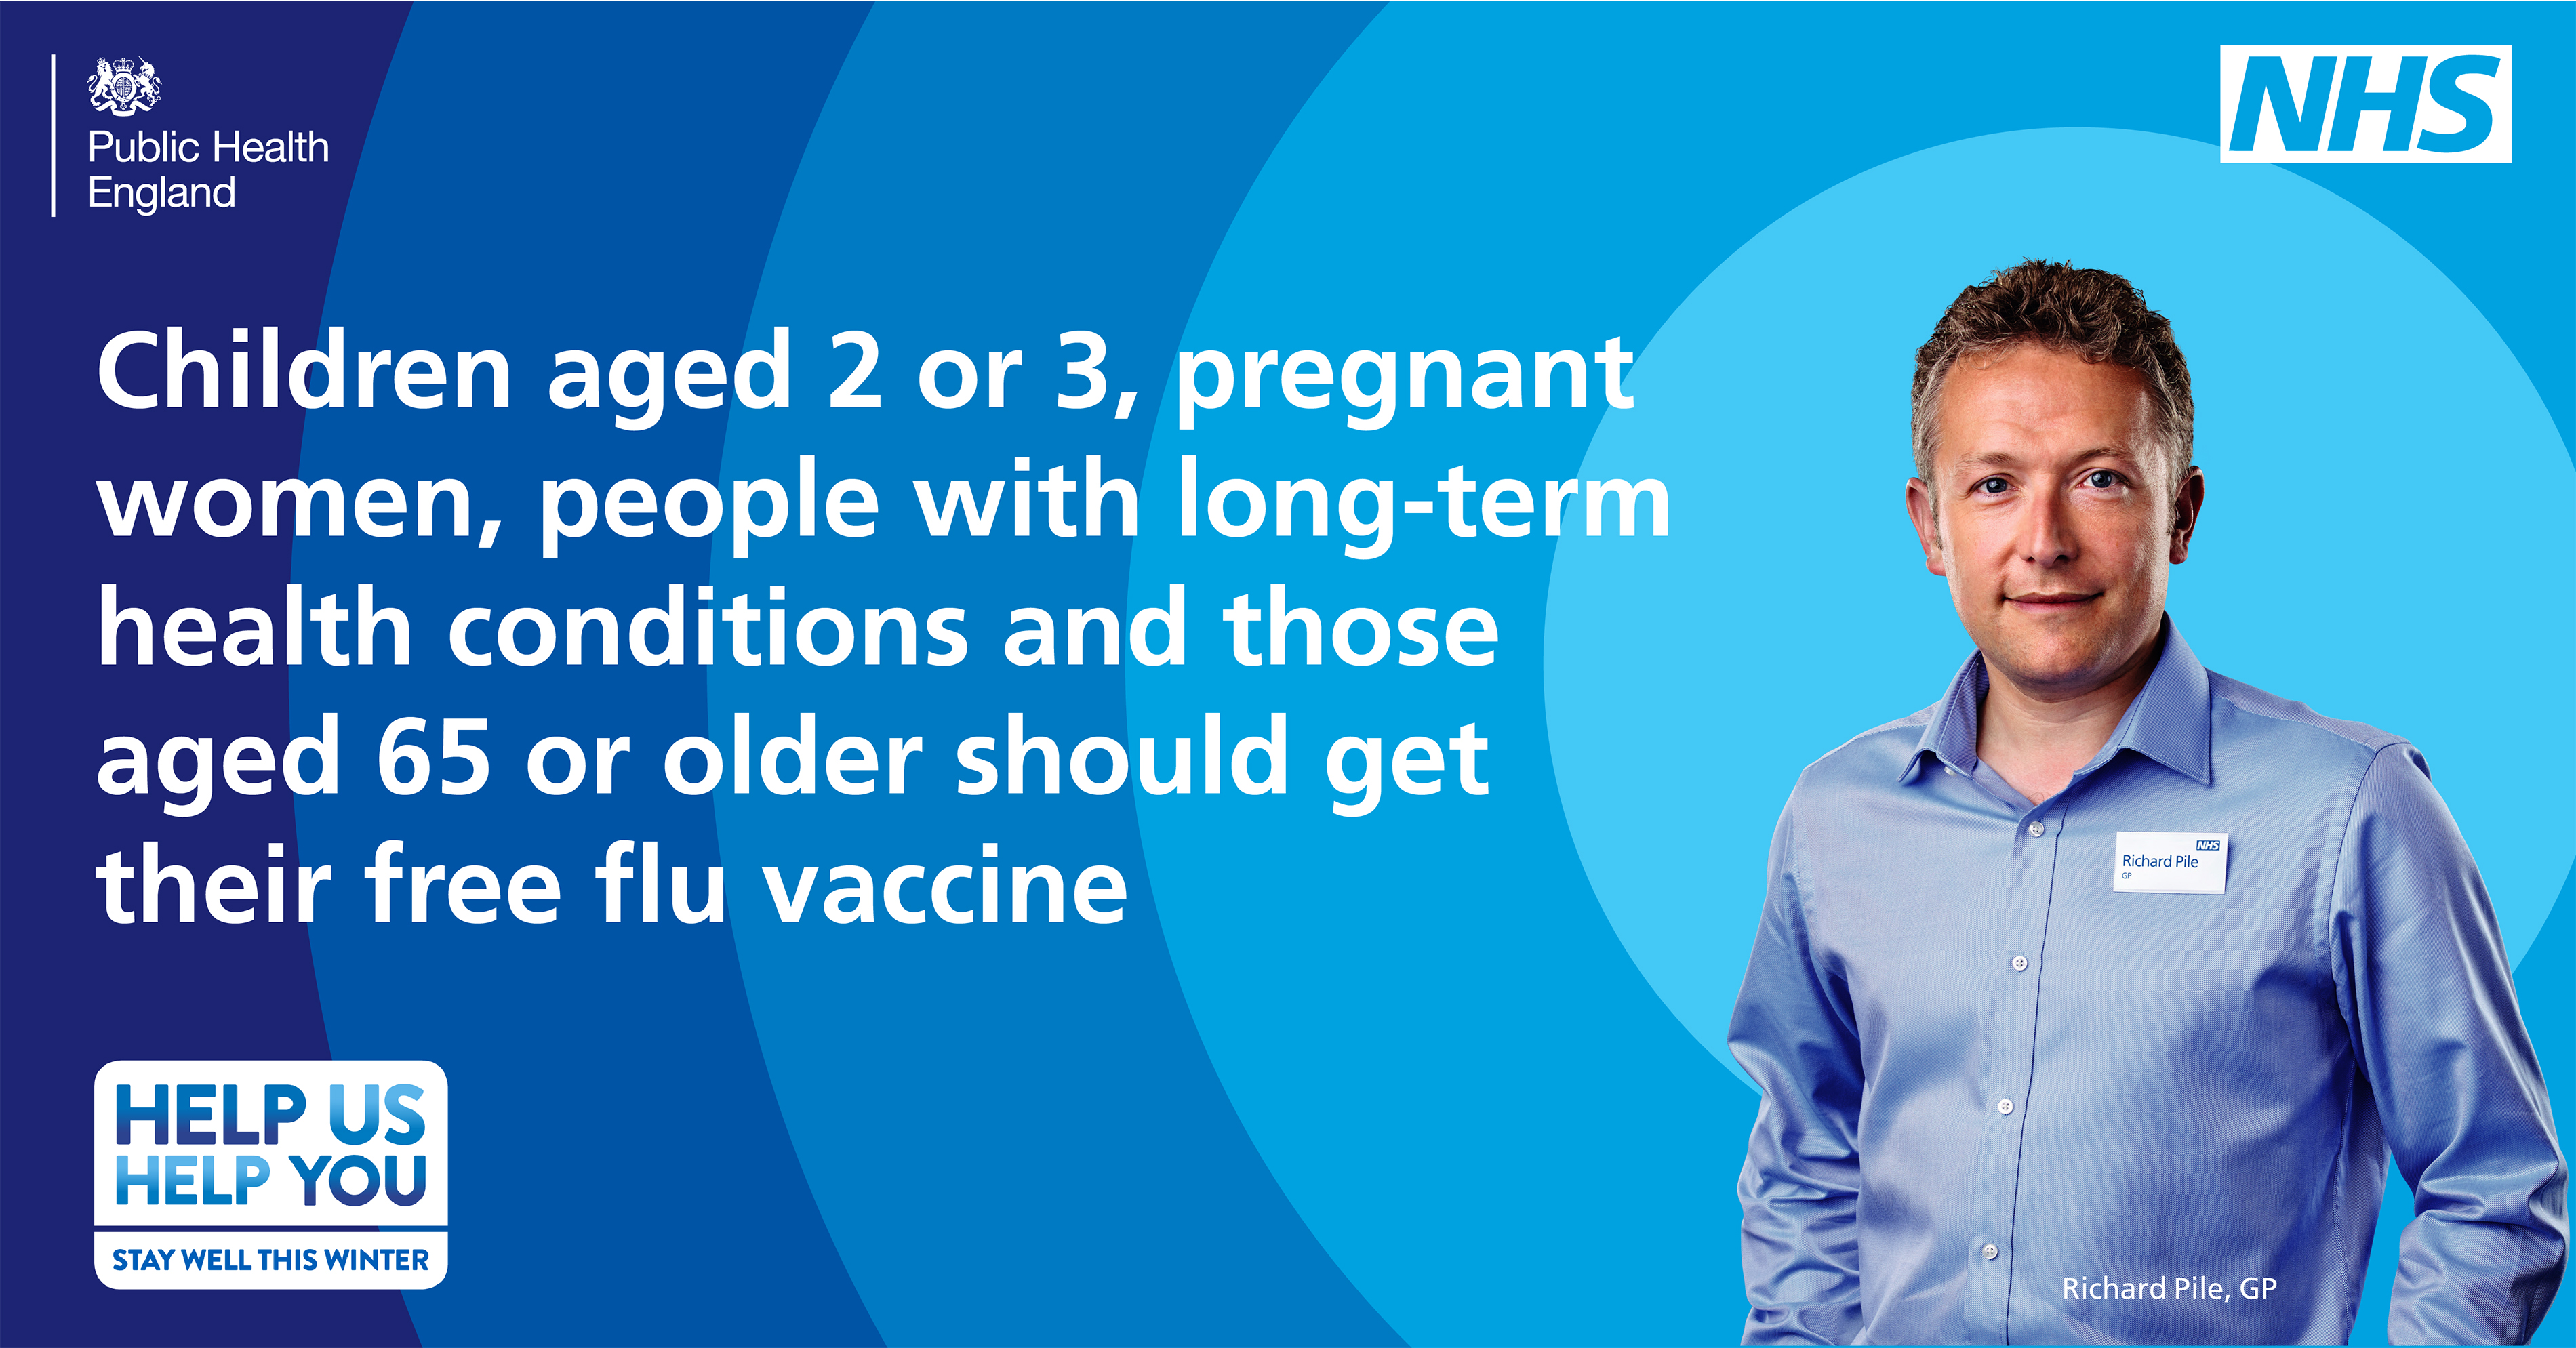 Get the flu jab to protect yourself and those around you